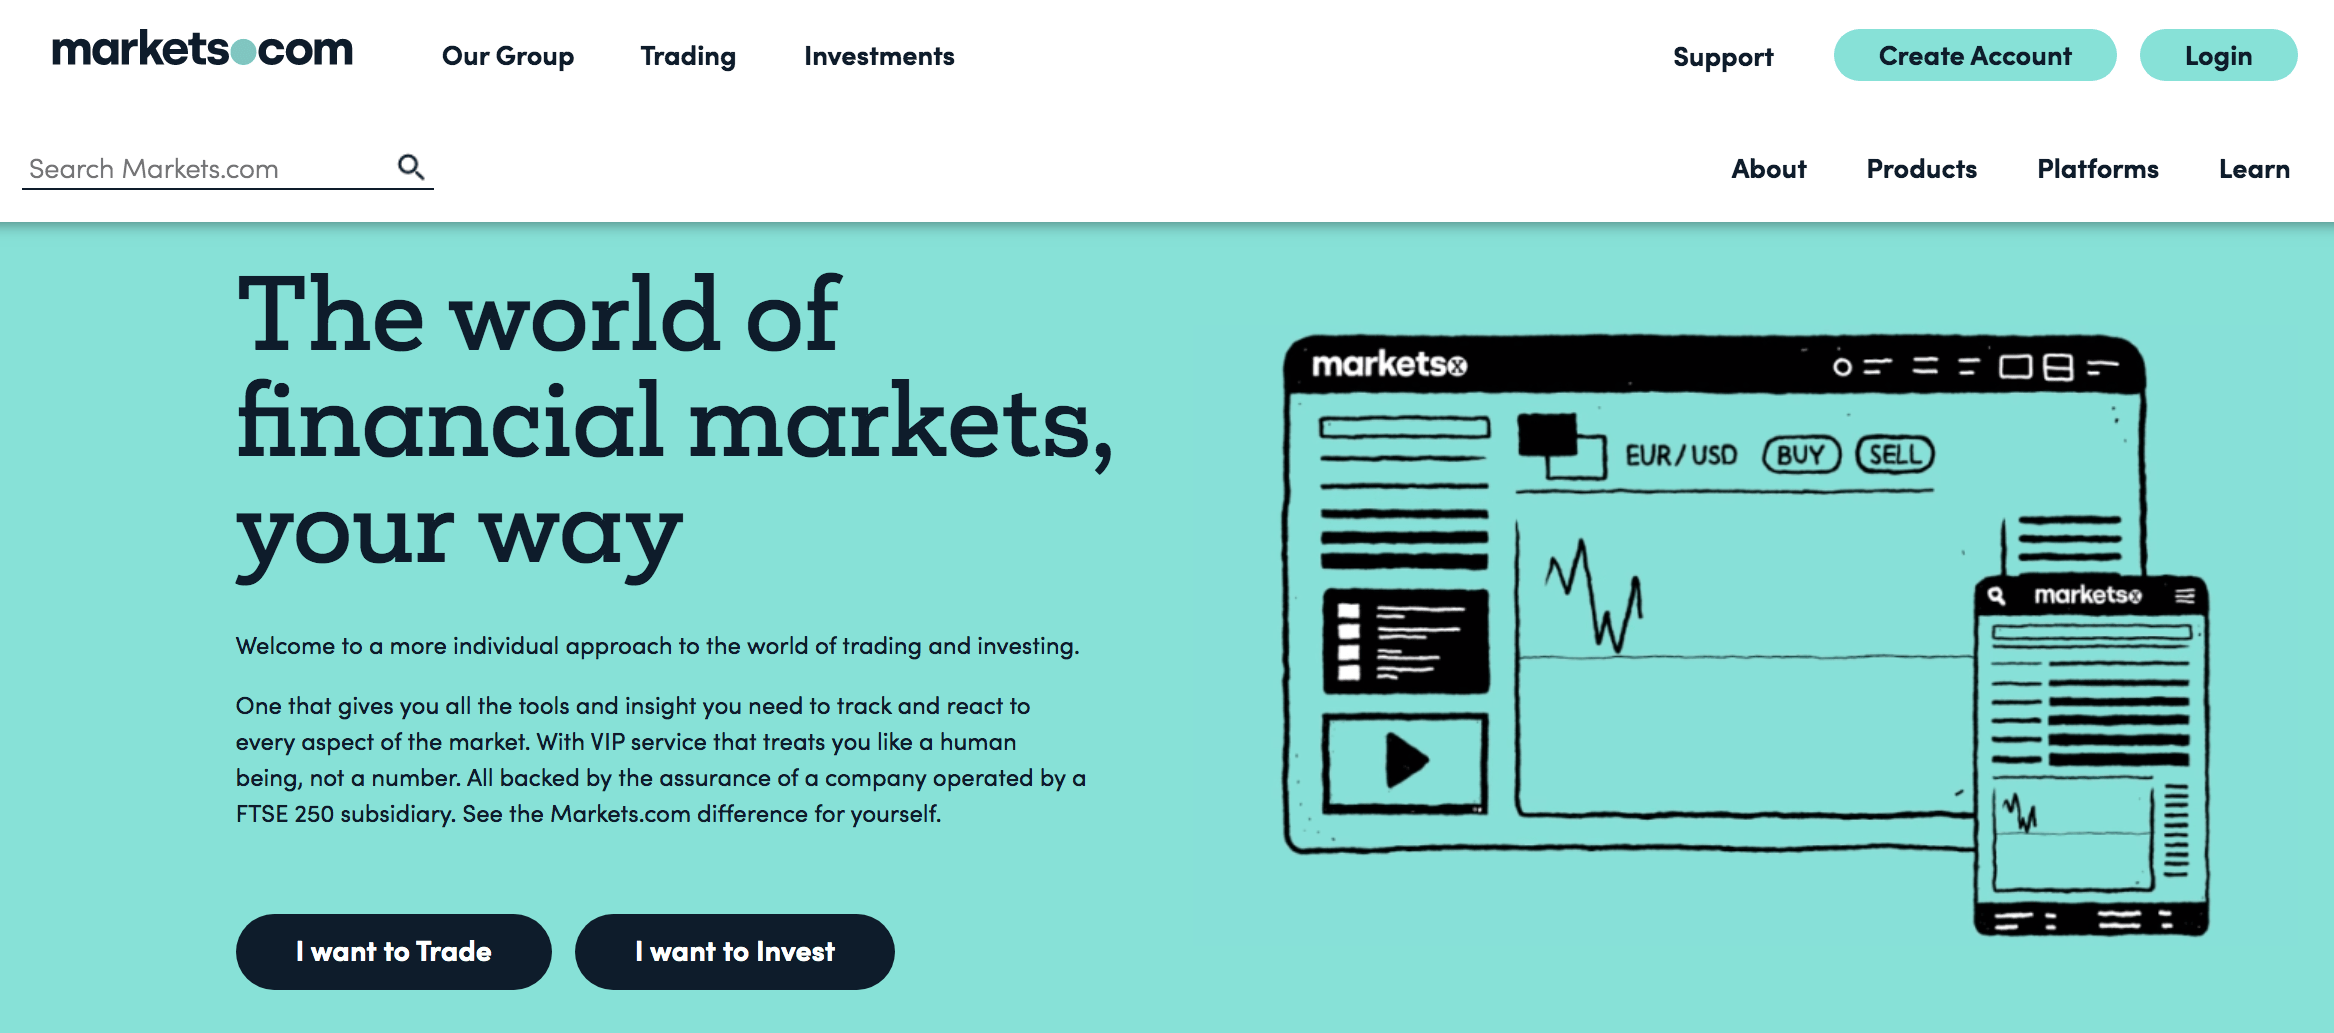 Markets.com home page